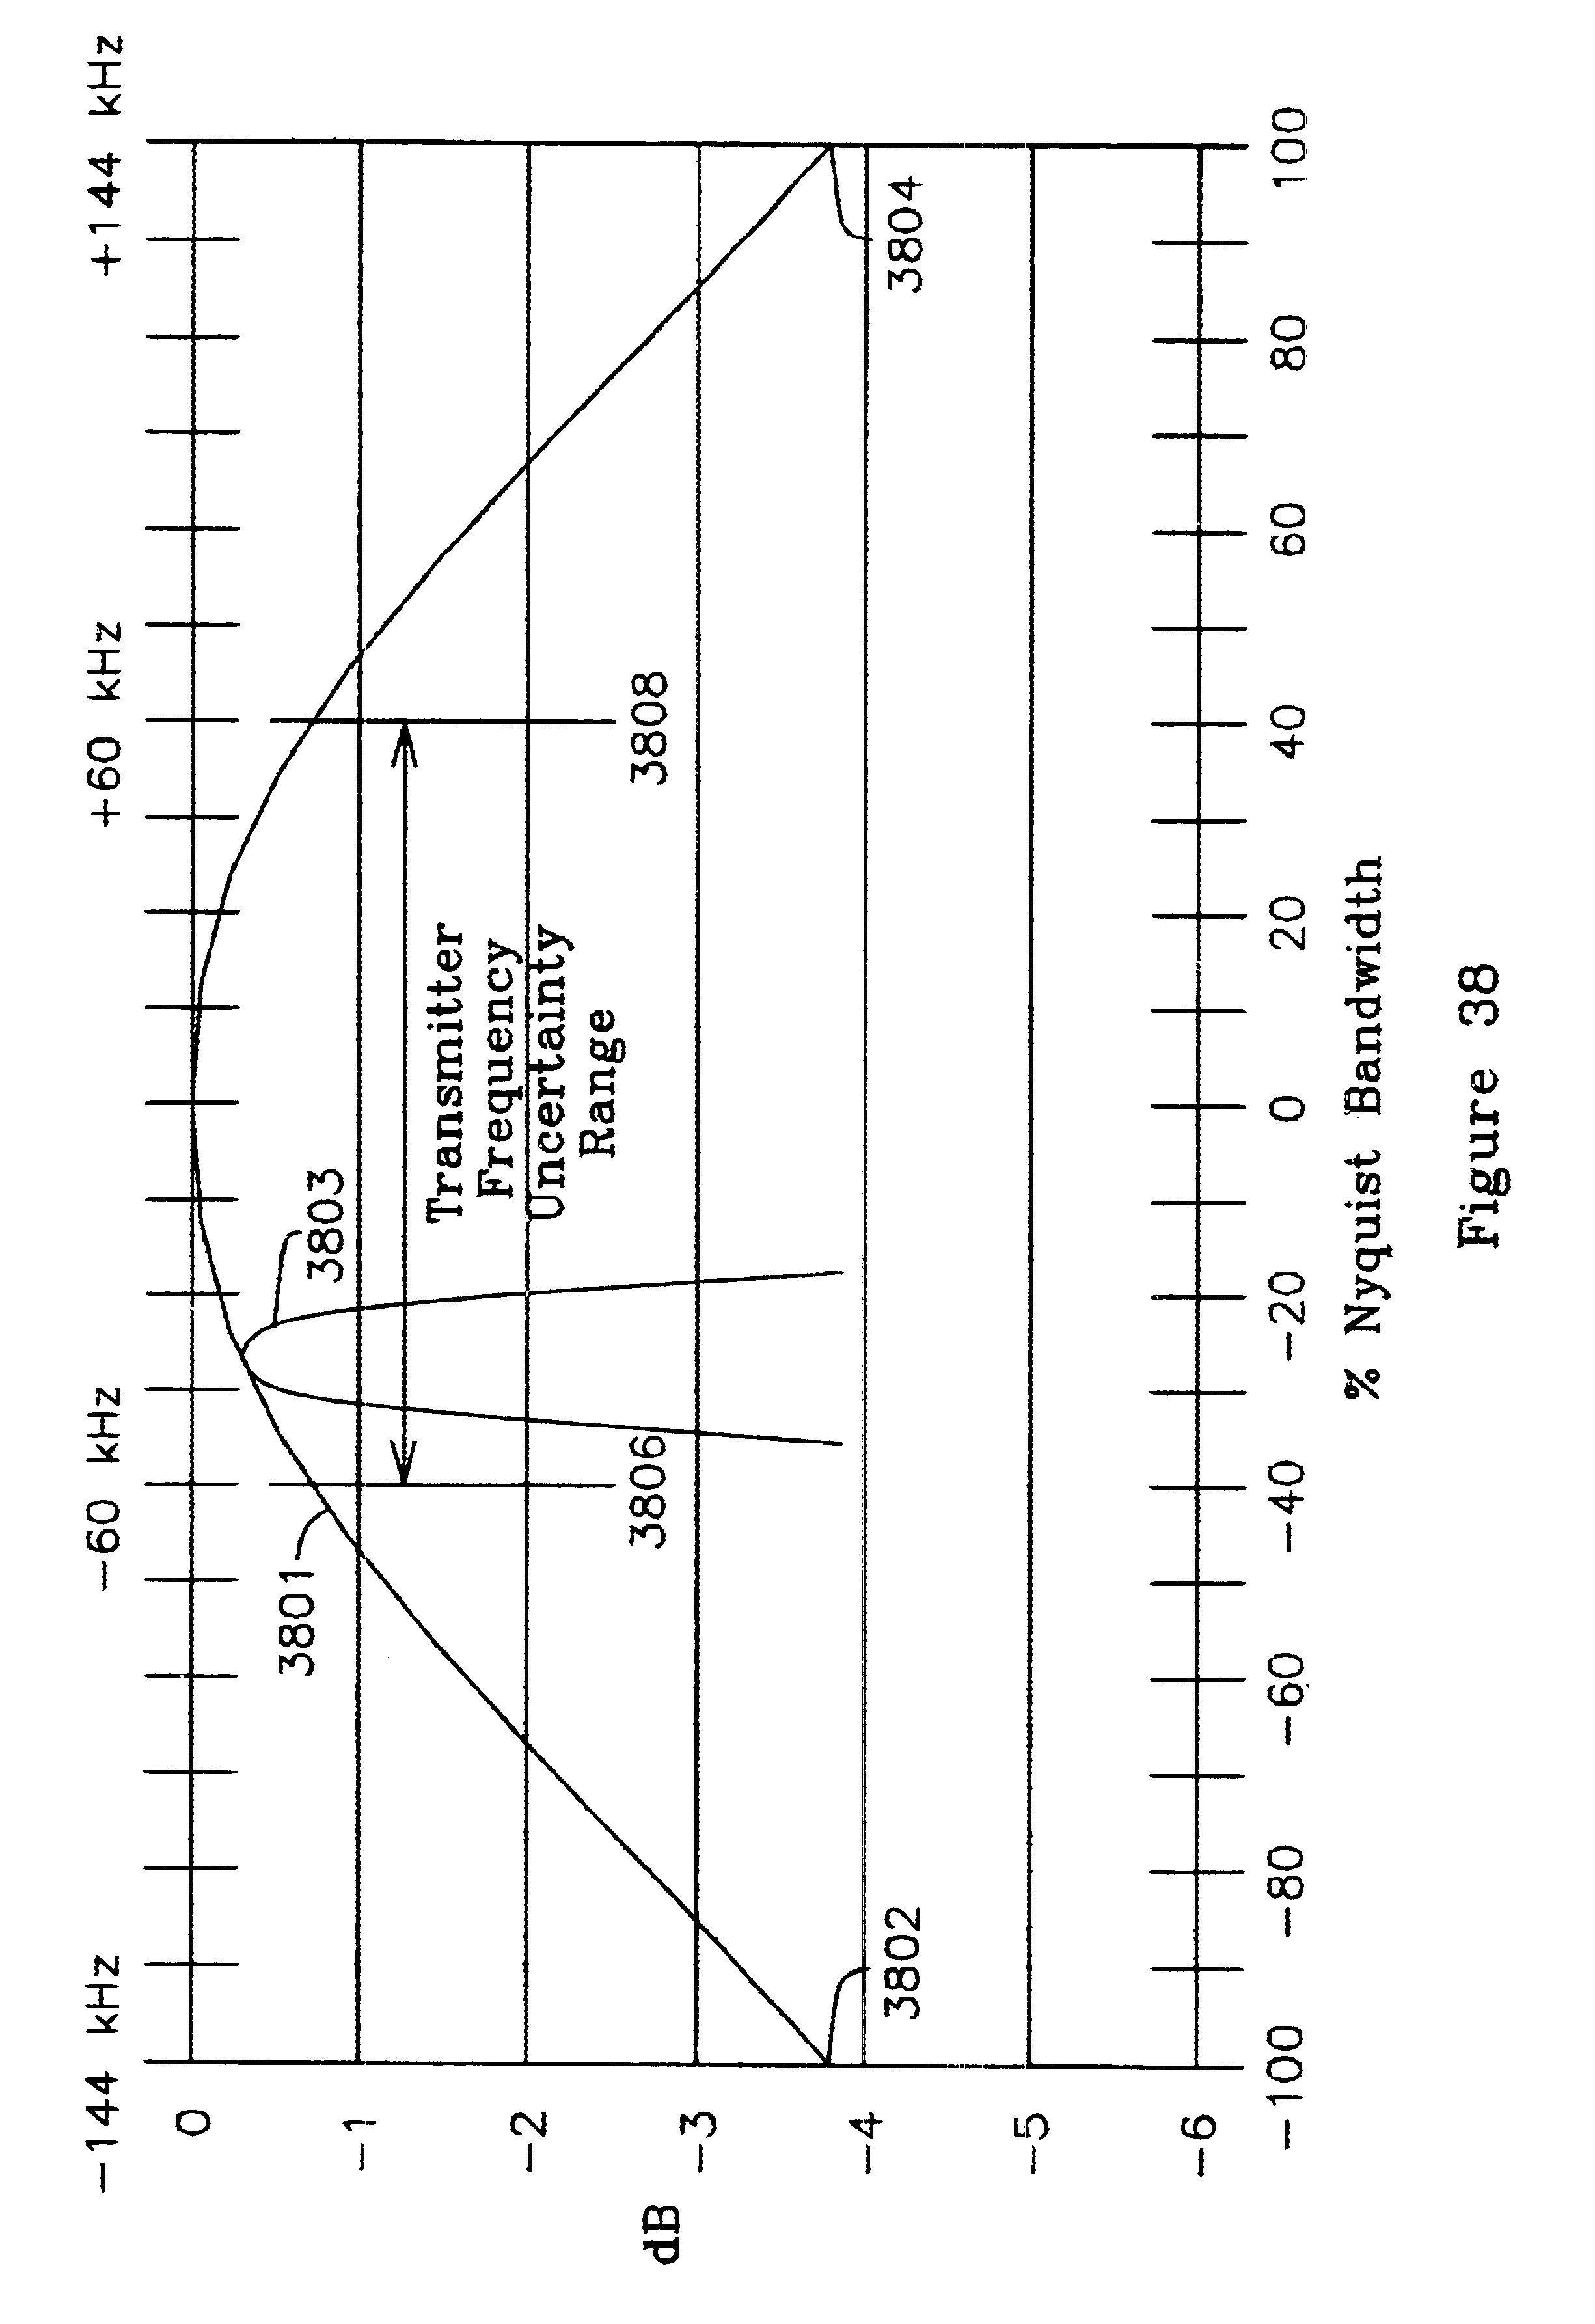 Patent Us 6639939 B1 45khz Lowpass Statevariable Filter Circuit Diagram Tradeofic Images